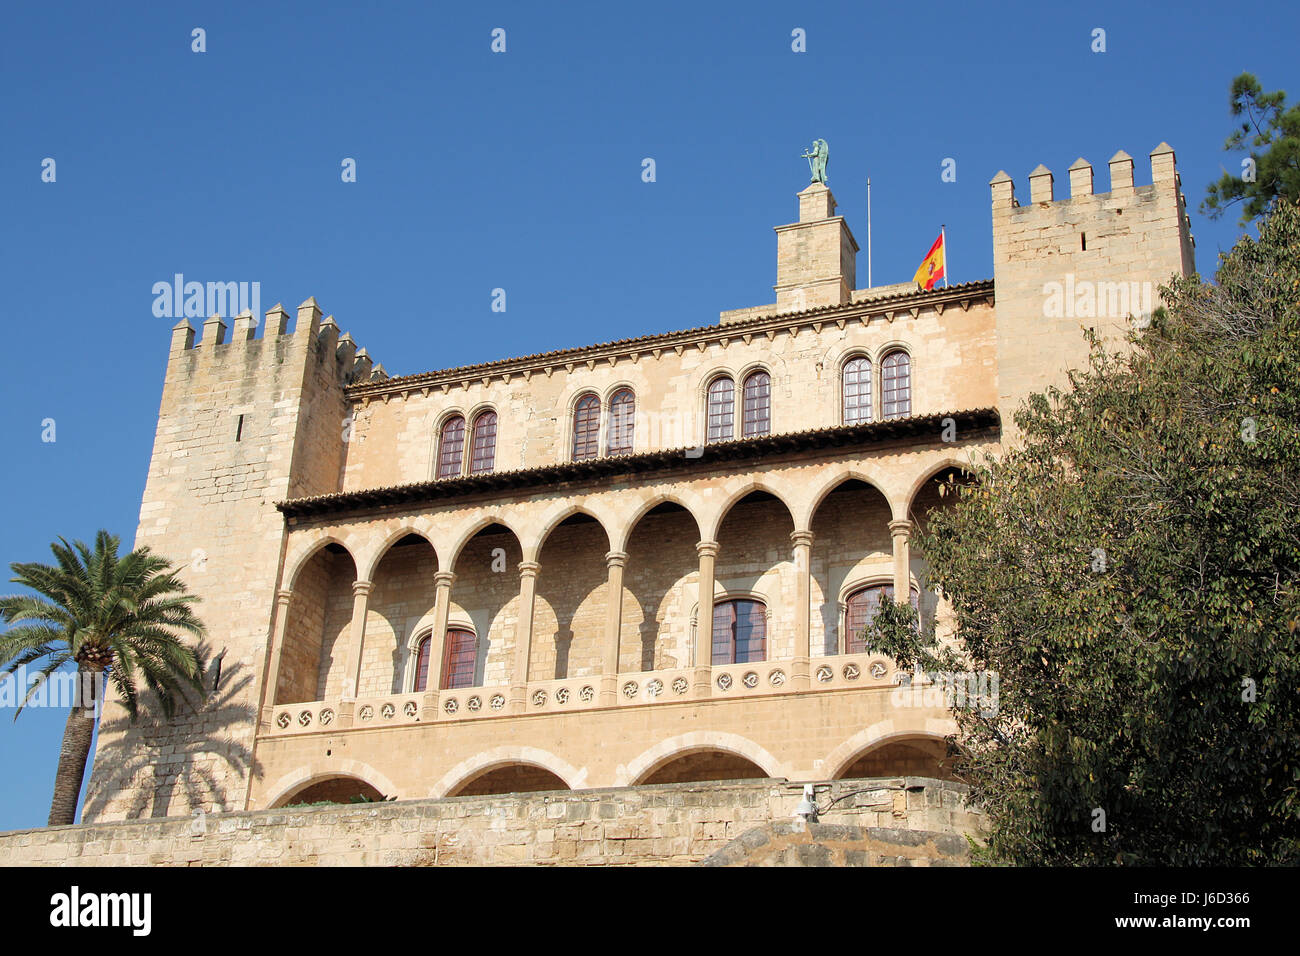 Sprossenfenster Wiki Palau De Almudaina Stock Photo 141658782 Alamy